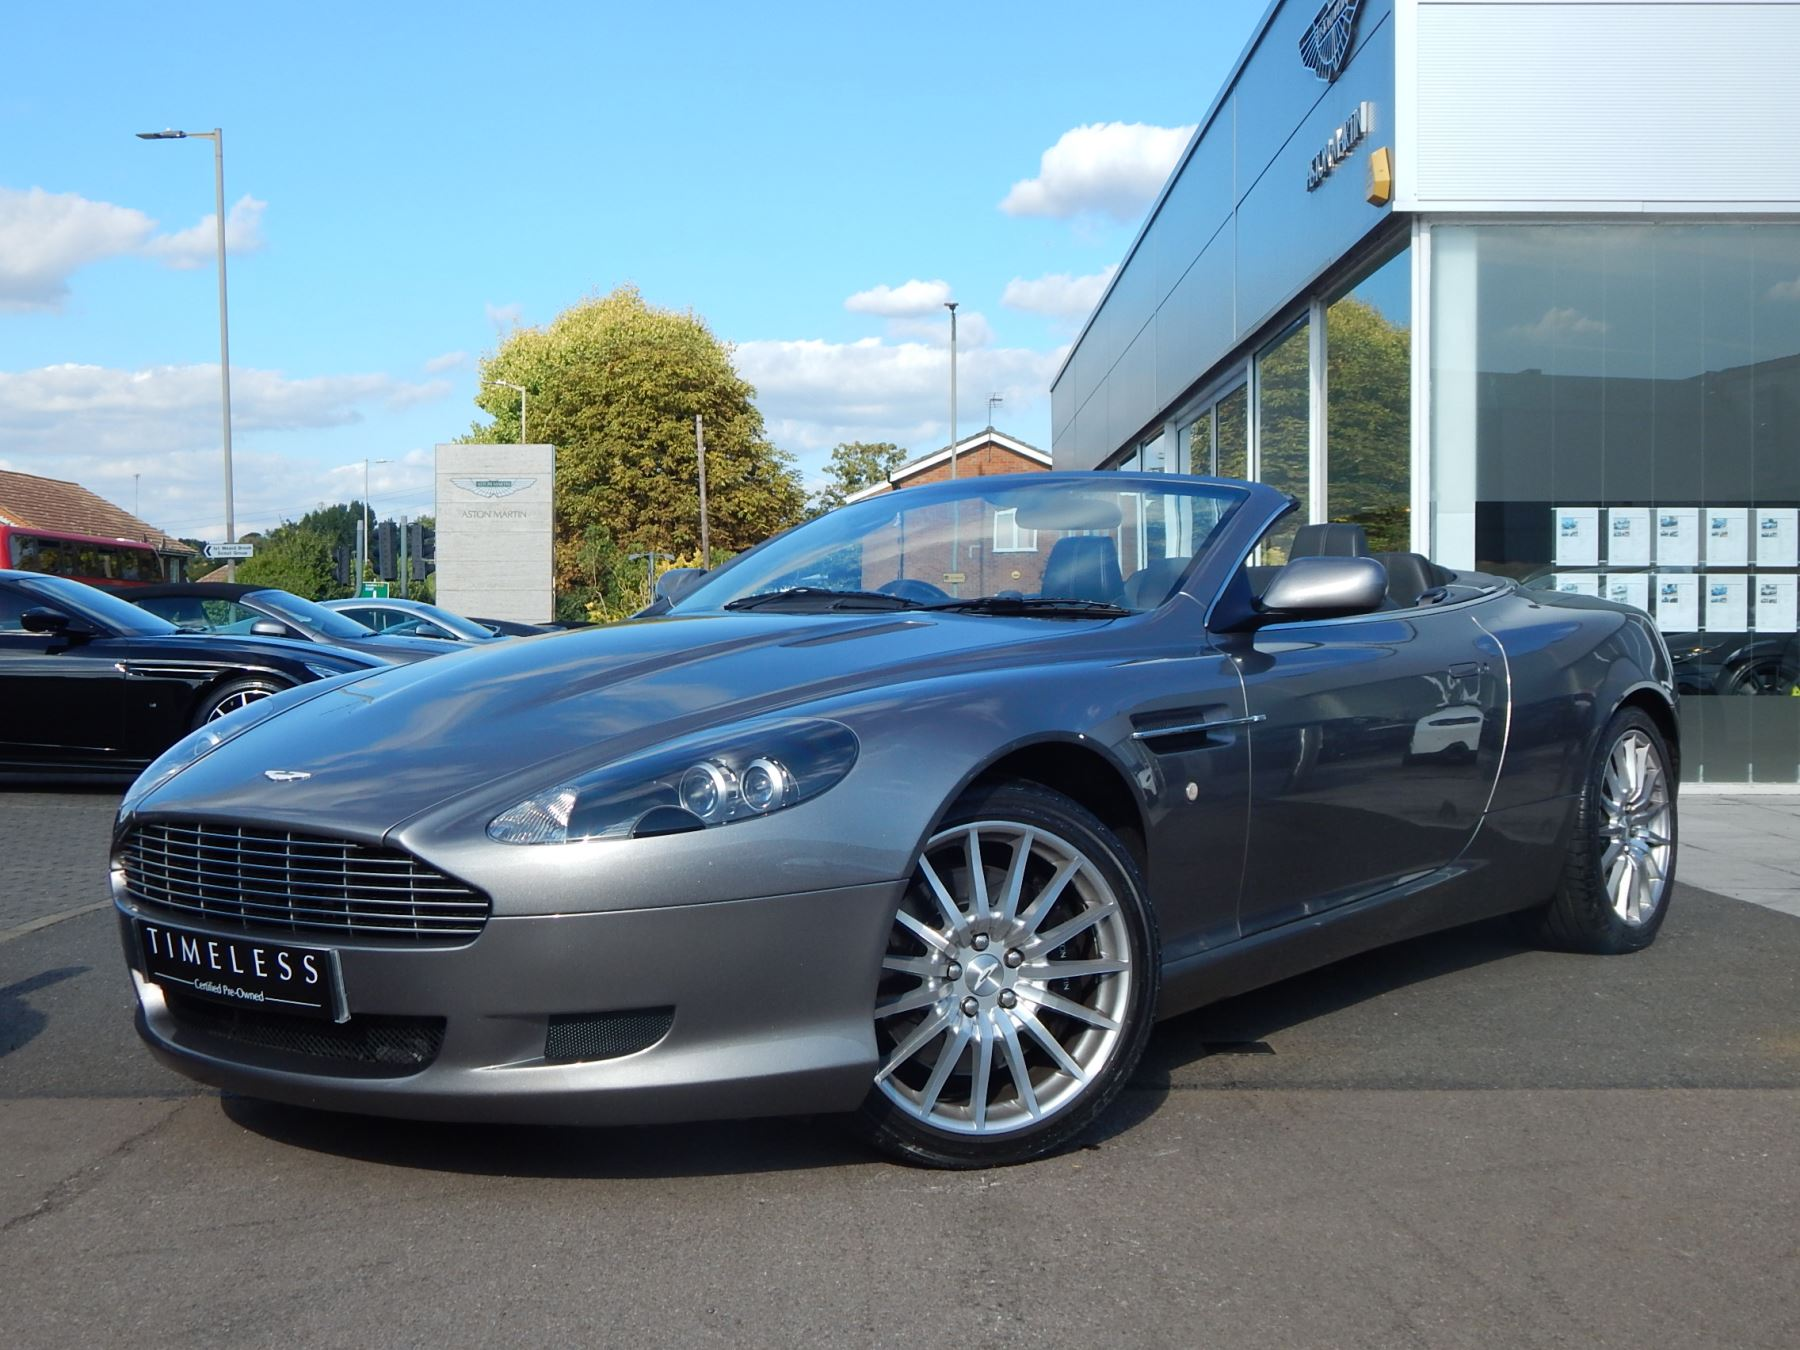 Used Aston Martin DB Cars For Sale Motorparks - Used aston martin db9